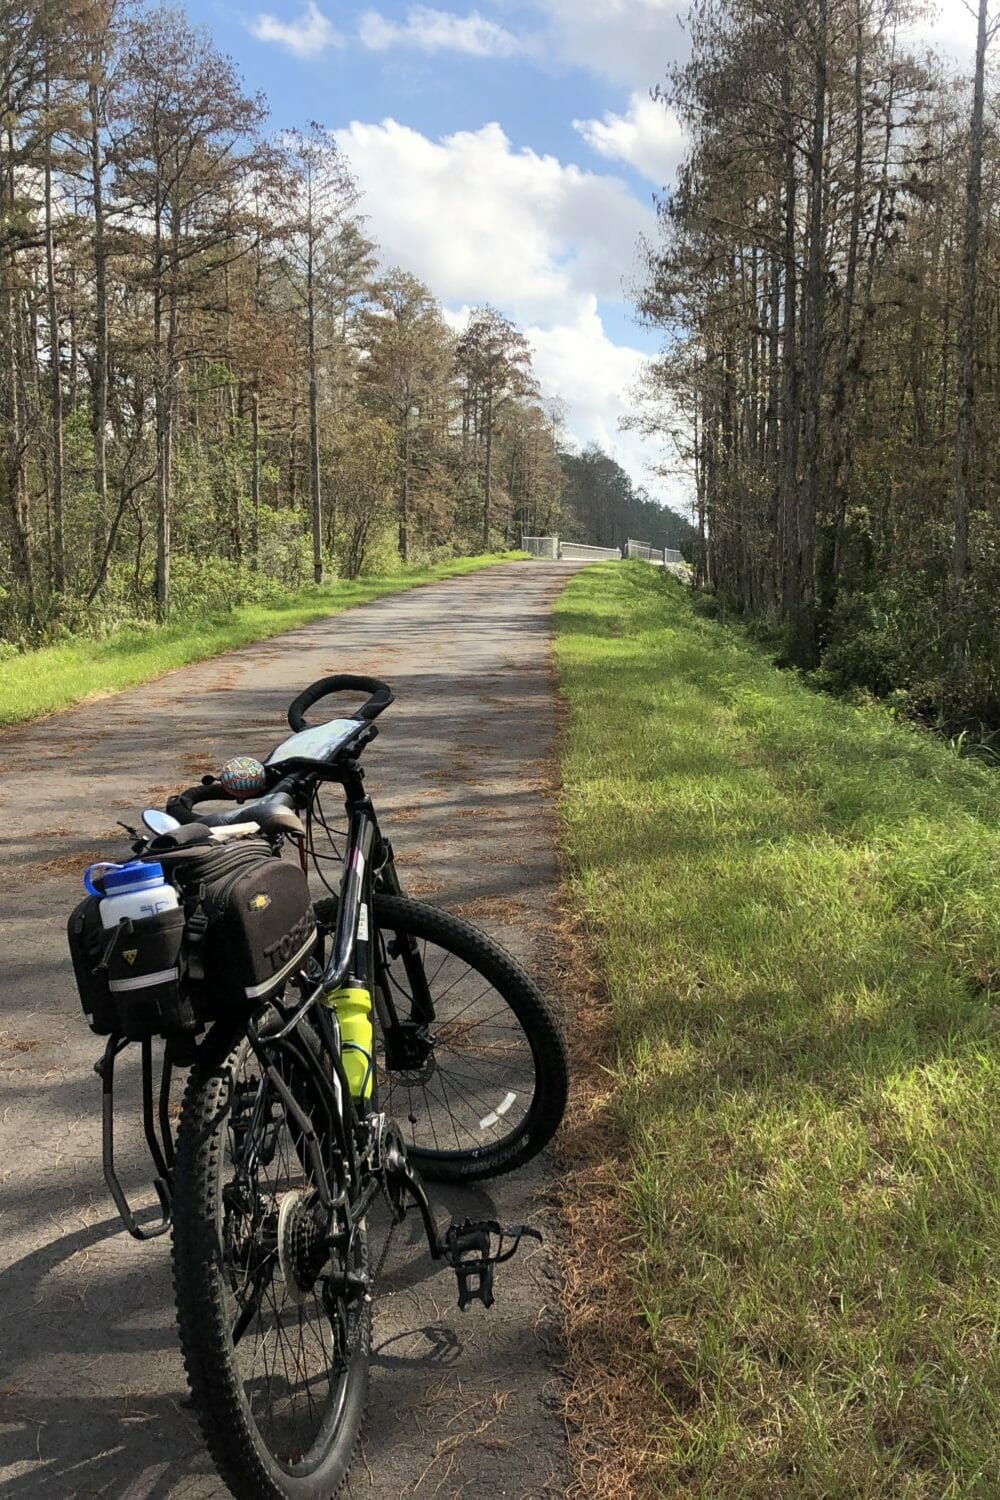 Take a ride on the East Central Regional Rail Trail! This 37-mile Volusia County bike path offers several lengthy ride options on a ribbon of paved trail through colorful swamps and forests, connecting the coastal community of Edgewater with the \